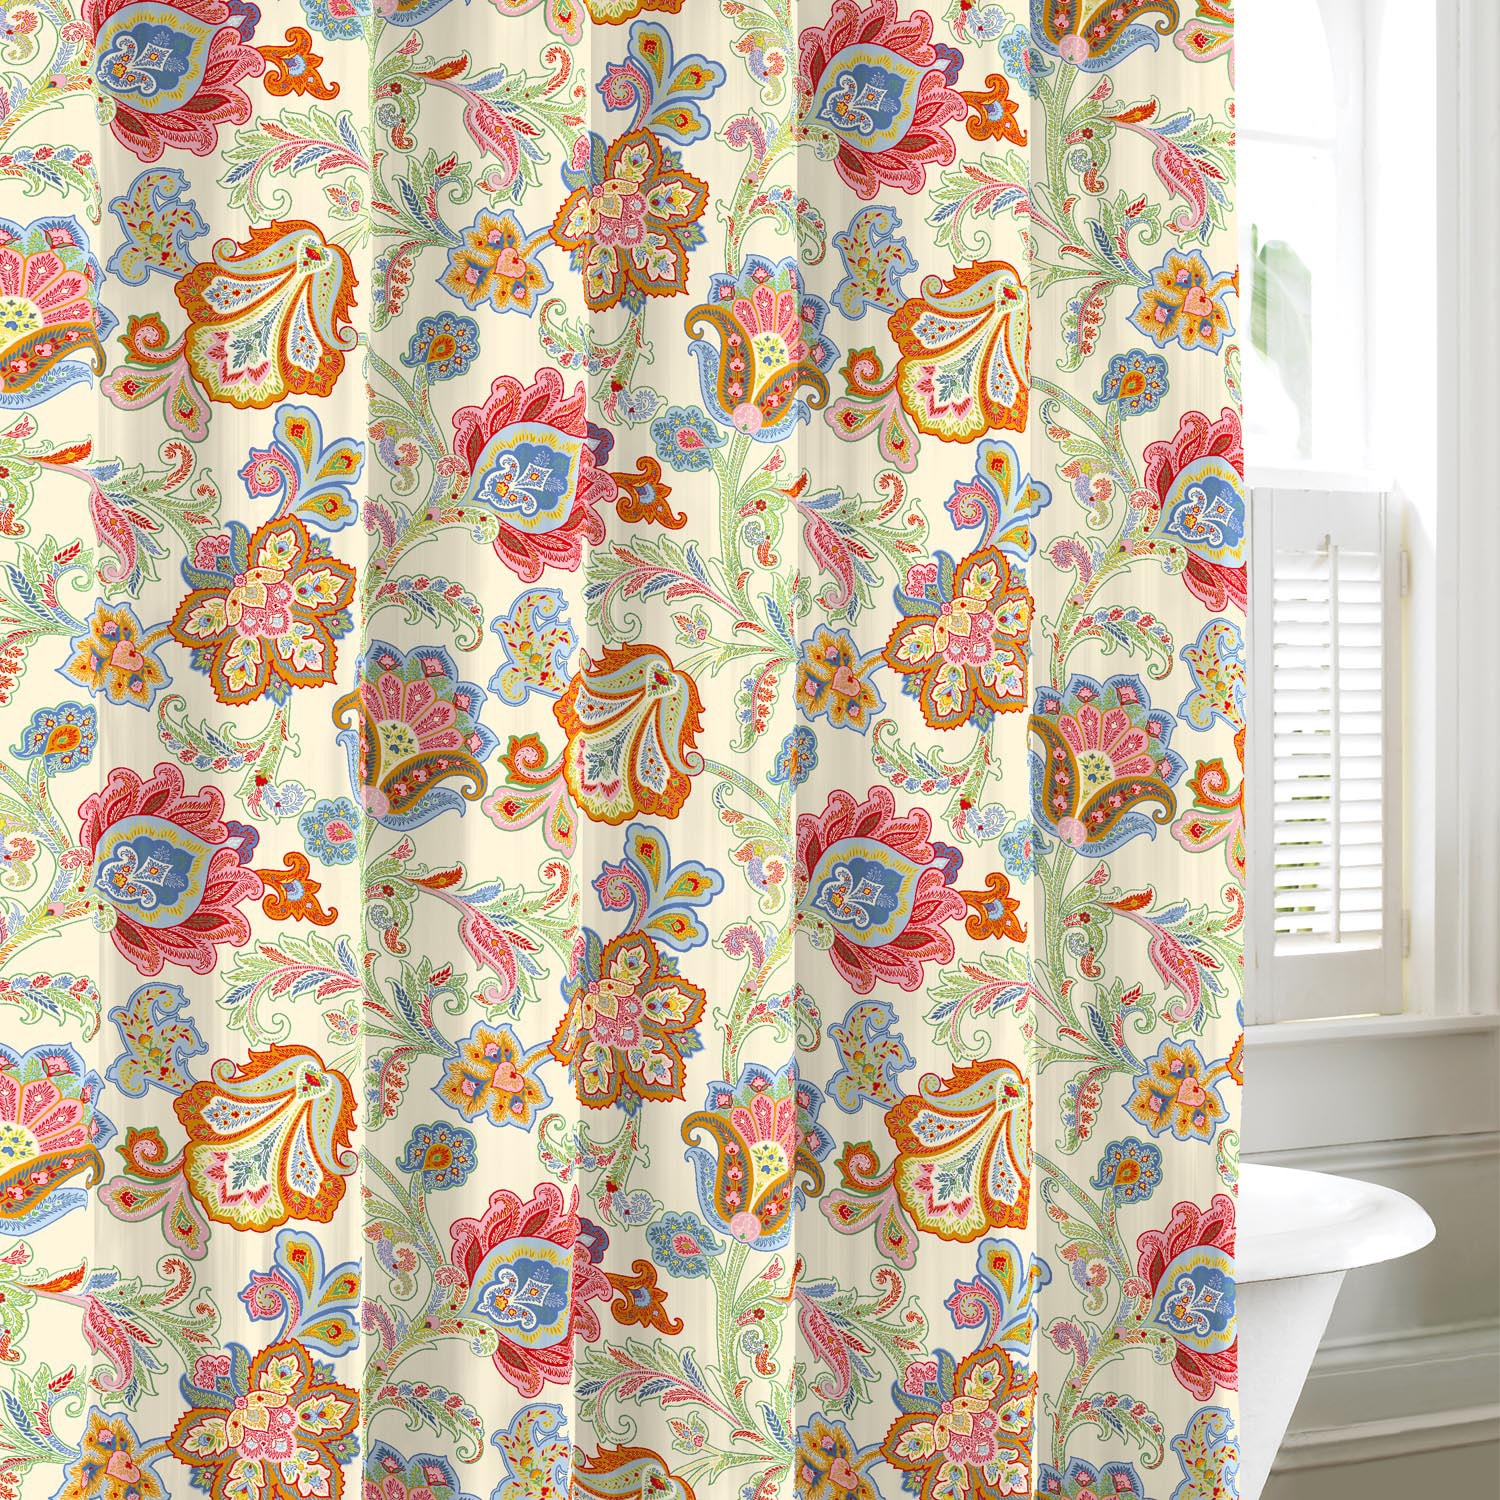 New Tommy Hilfiger Floral Paisley Design Cotton Shower Curtain | eBay